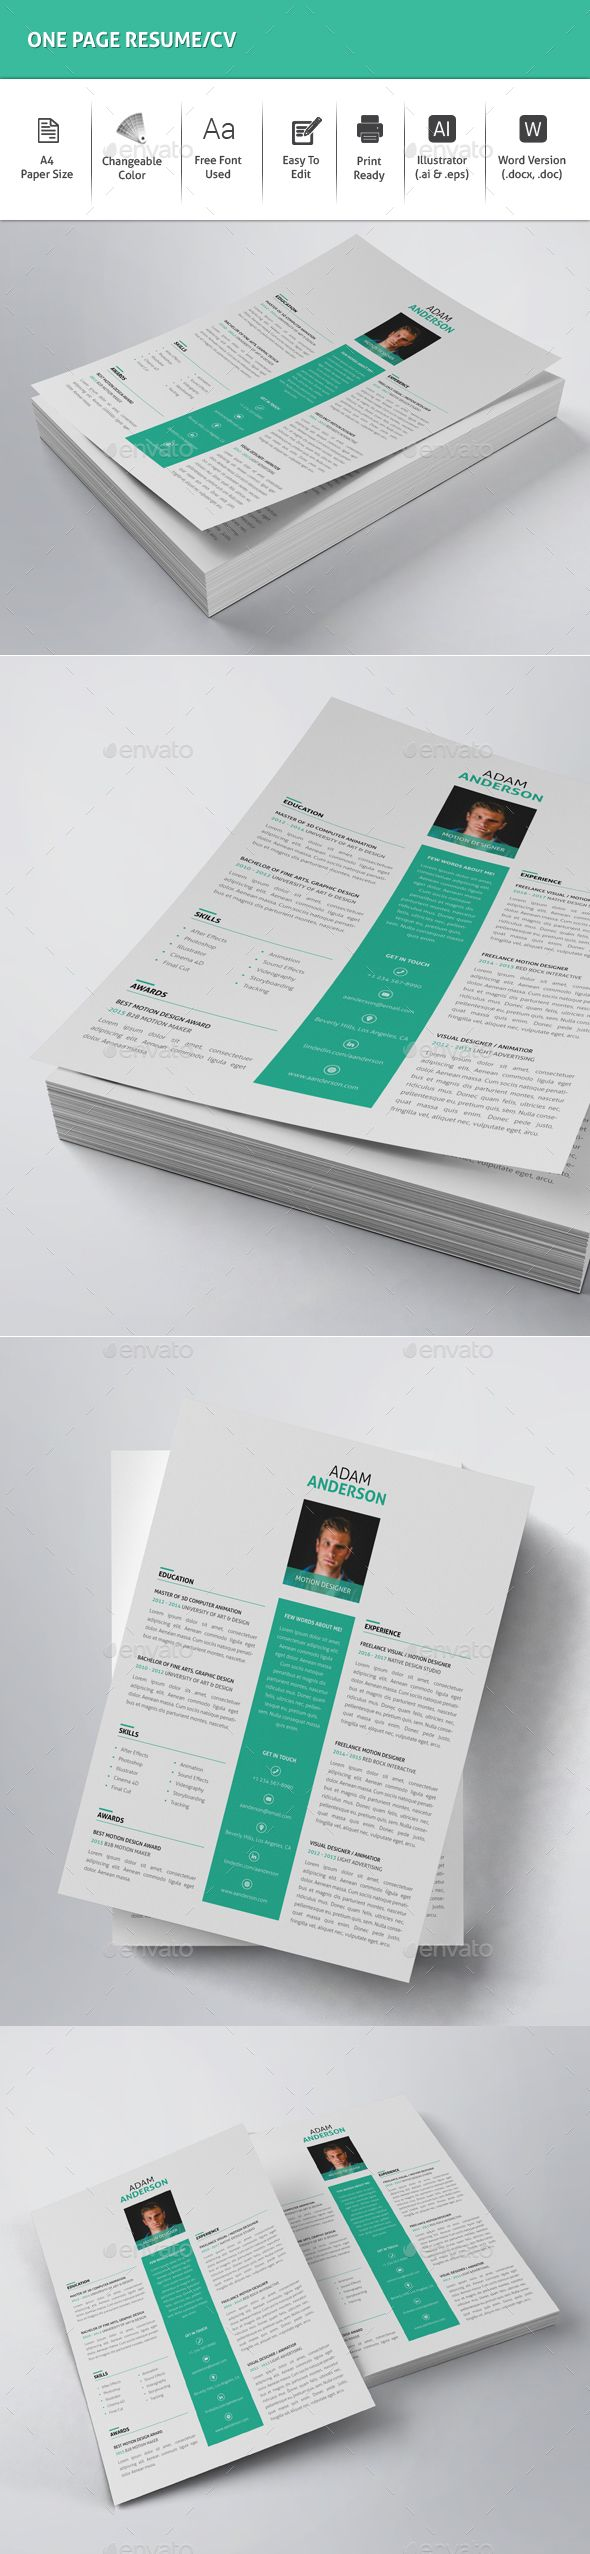 One Page ResumeCv  Resume Cv Cv Template And Template